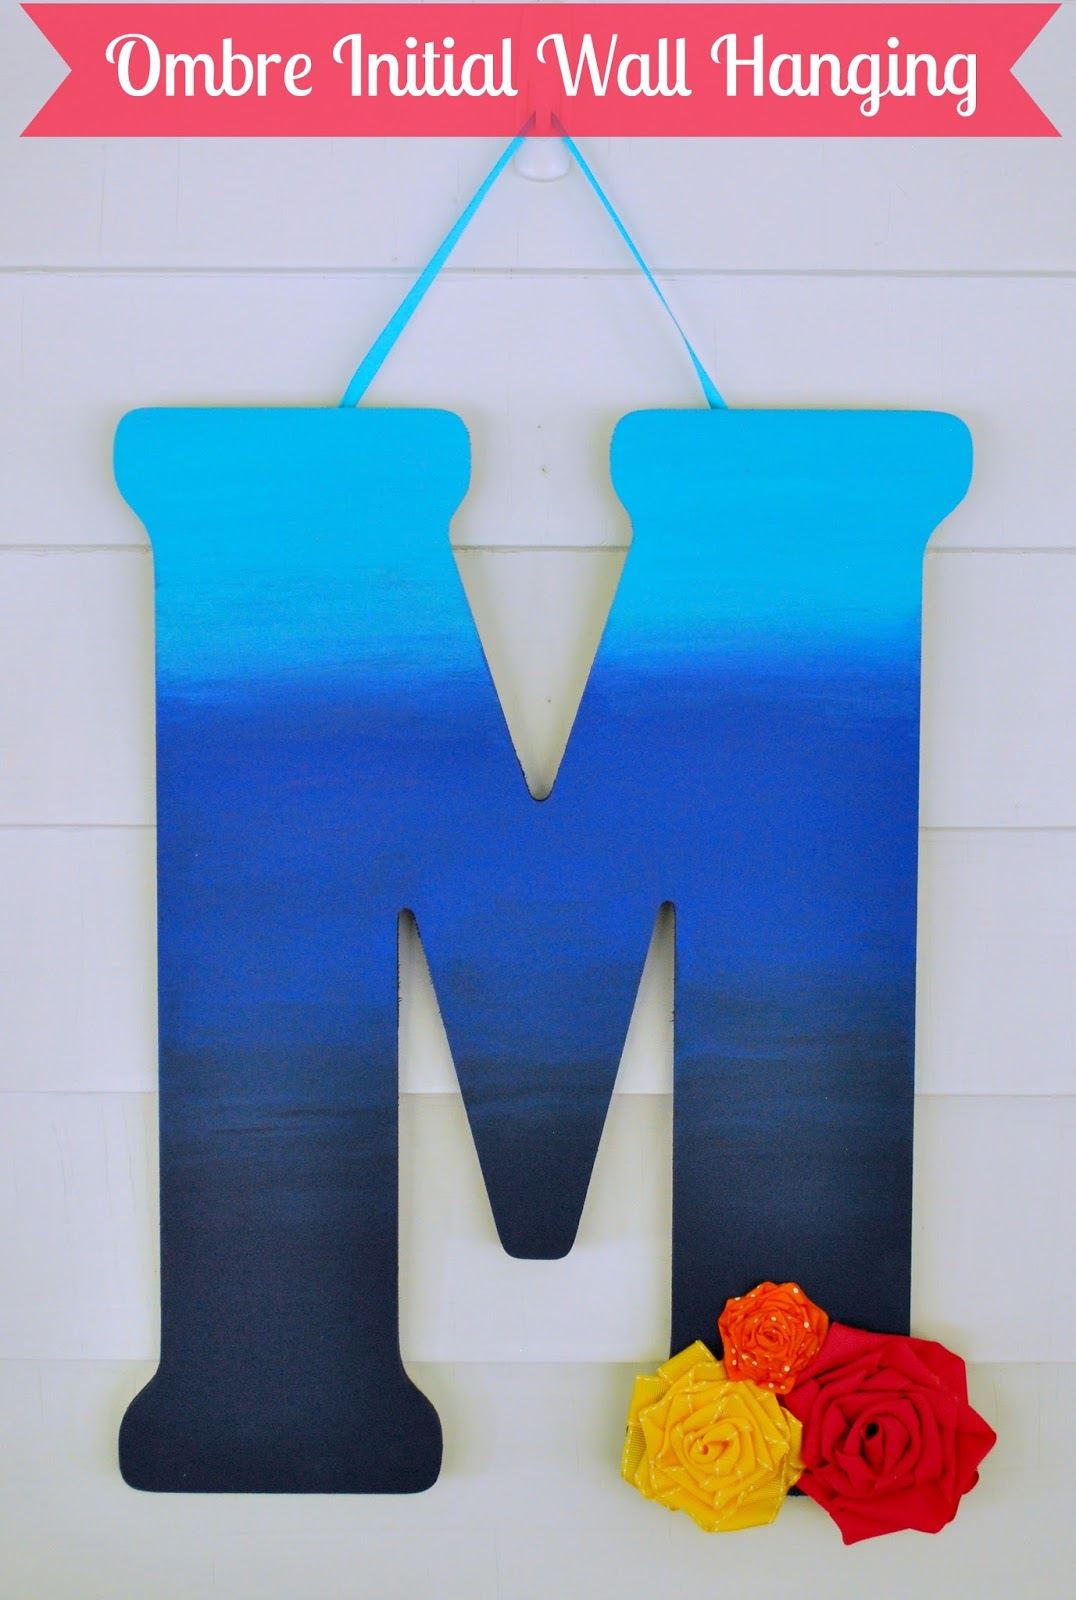 http://www.aglimpseinsideblog.com/2015/10/ombre-initial-wall-hanging.html